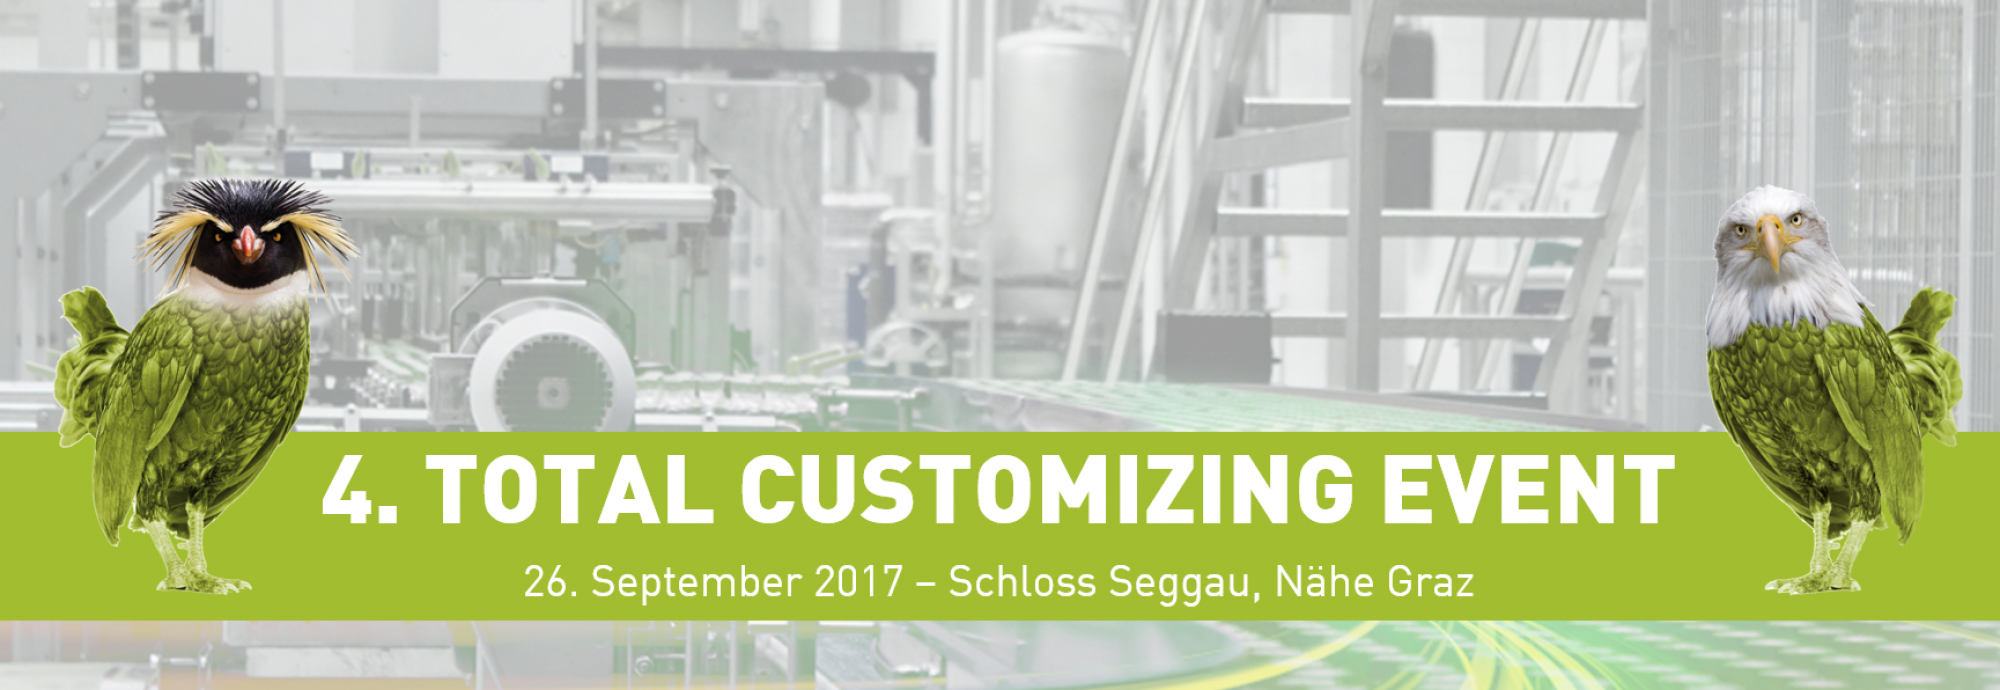 TOTAL CUSTOMIZING EVENT 2017 - 26.September 2017